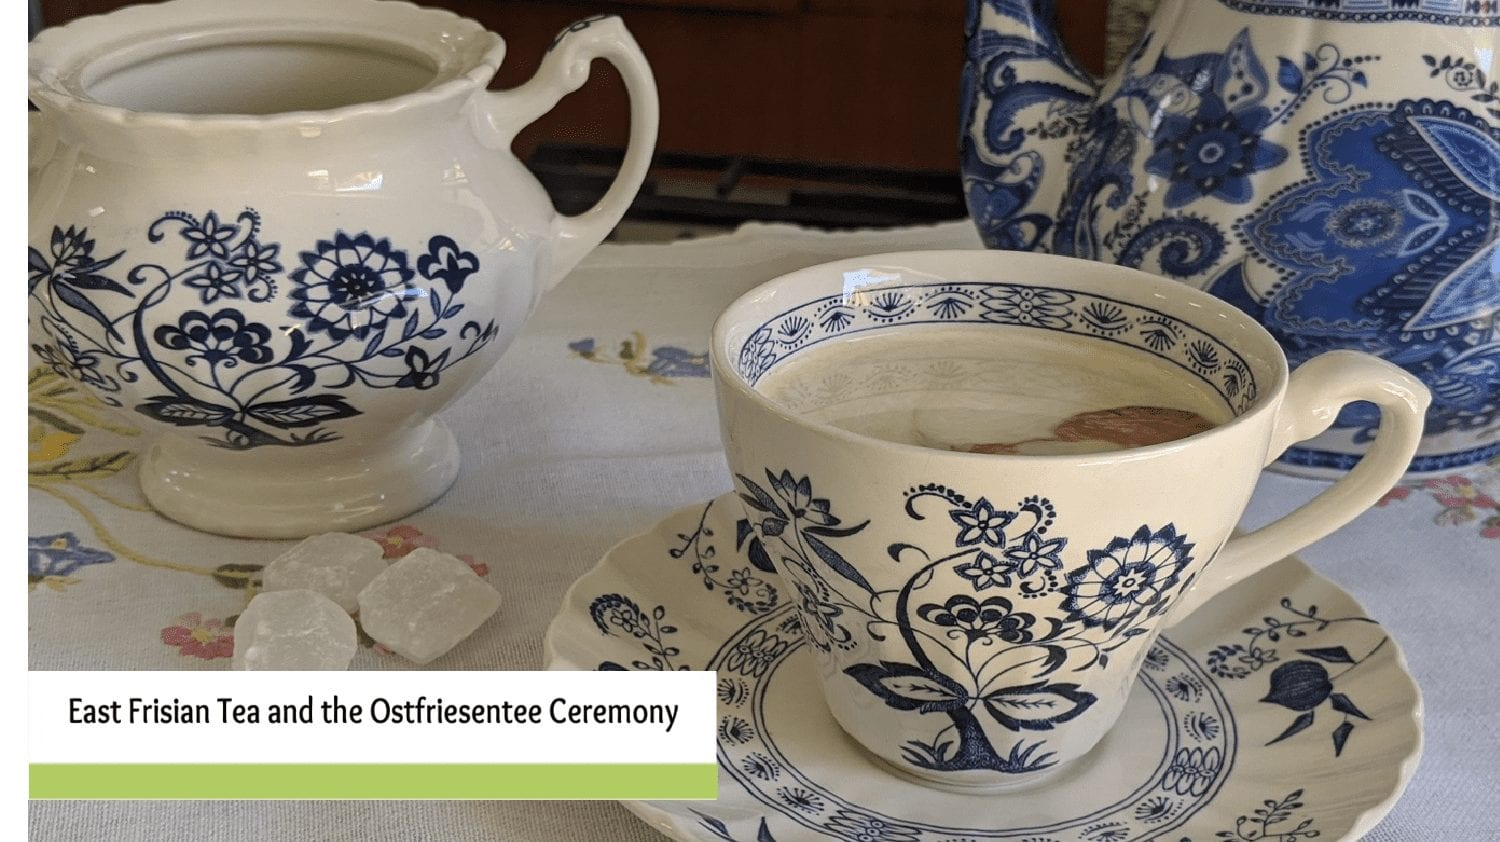 East Frisian Tea and the Ostfriesentee Ceremony